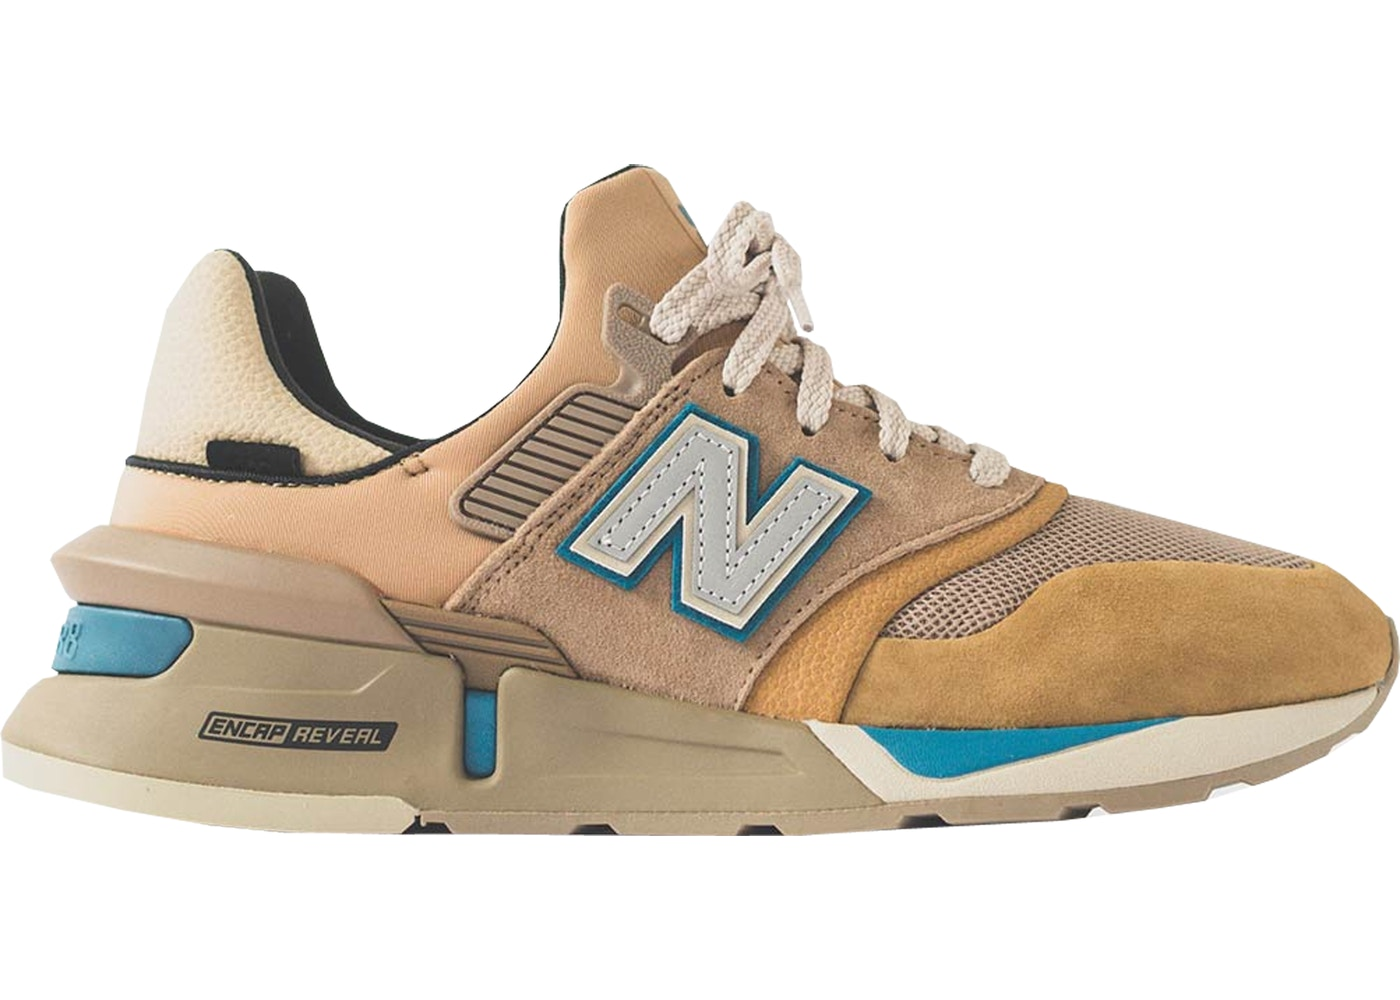 New Balance Footwear - Buy Deadstock Sneakers bae65afaa4